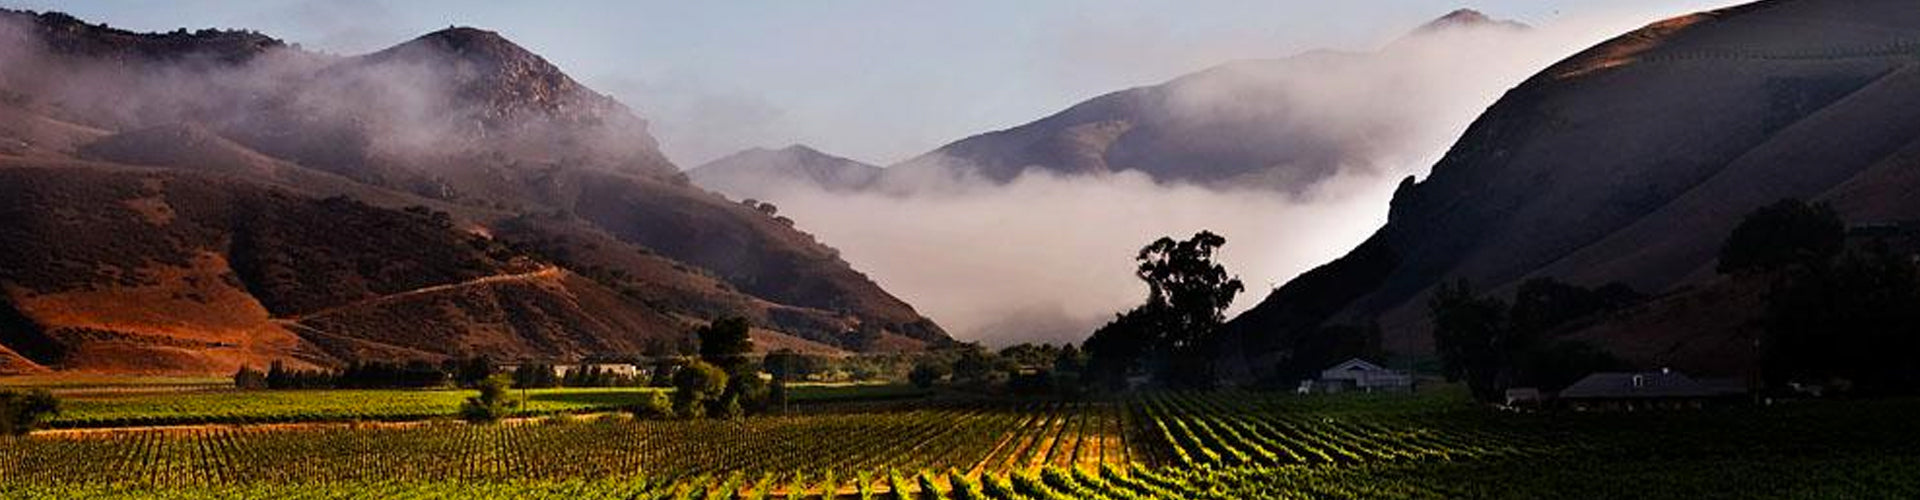 Santa Maria Valley Vineyards in Santa Barbara County, California